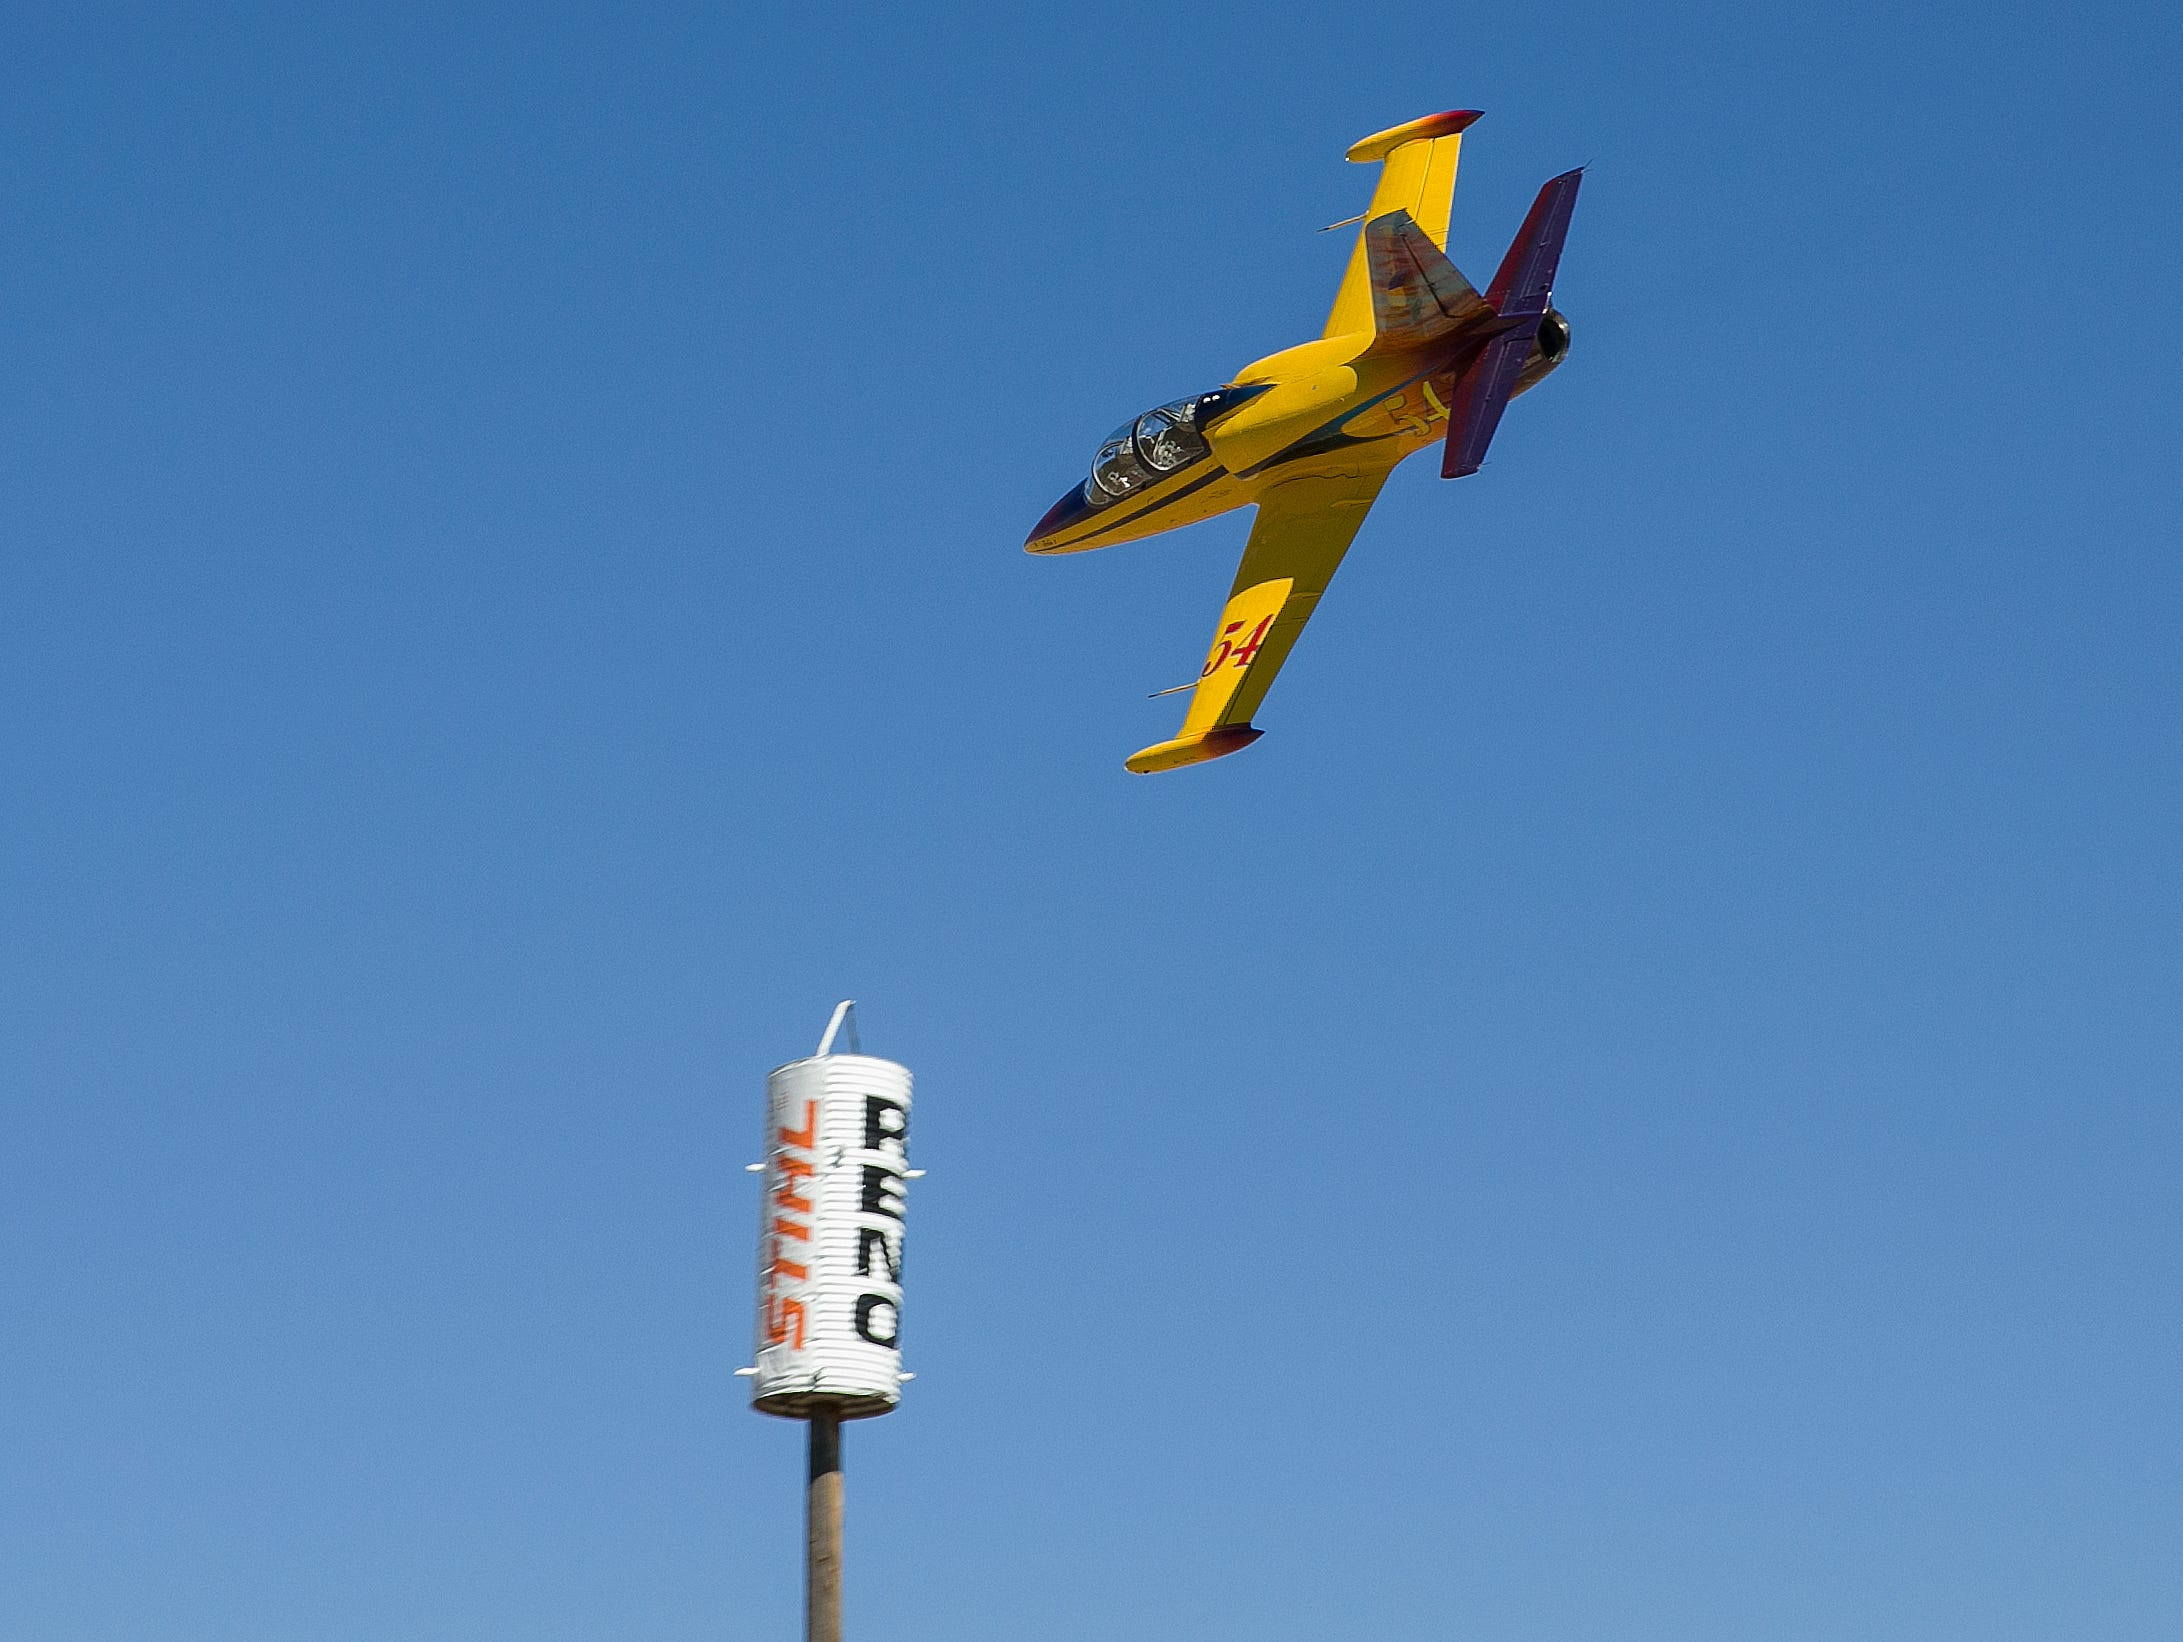 Jeff Turney from Reno finished 2nd in the Jet Silver race during the Reno National Championship Air Races on Sunday, Sept. 16, 2018.